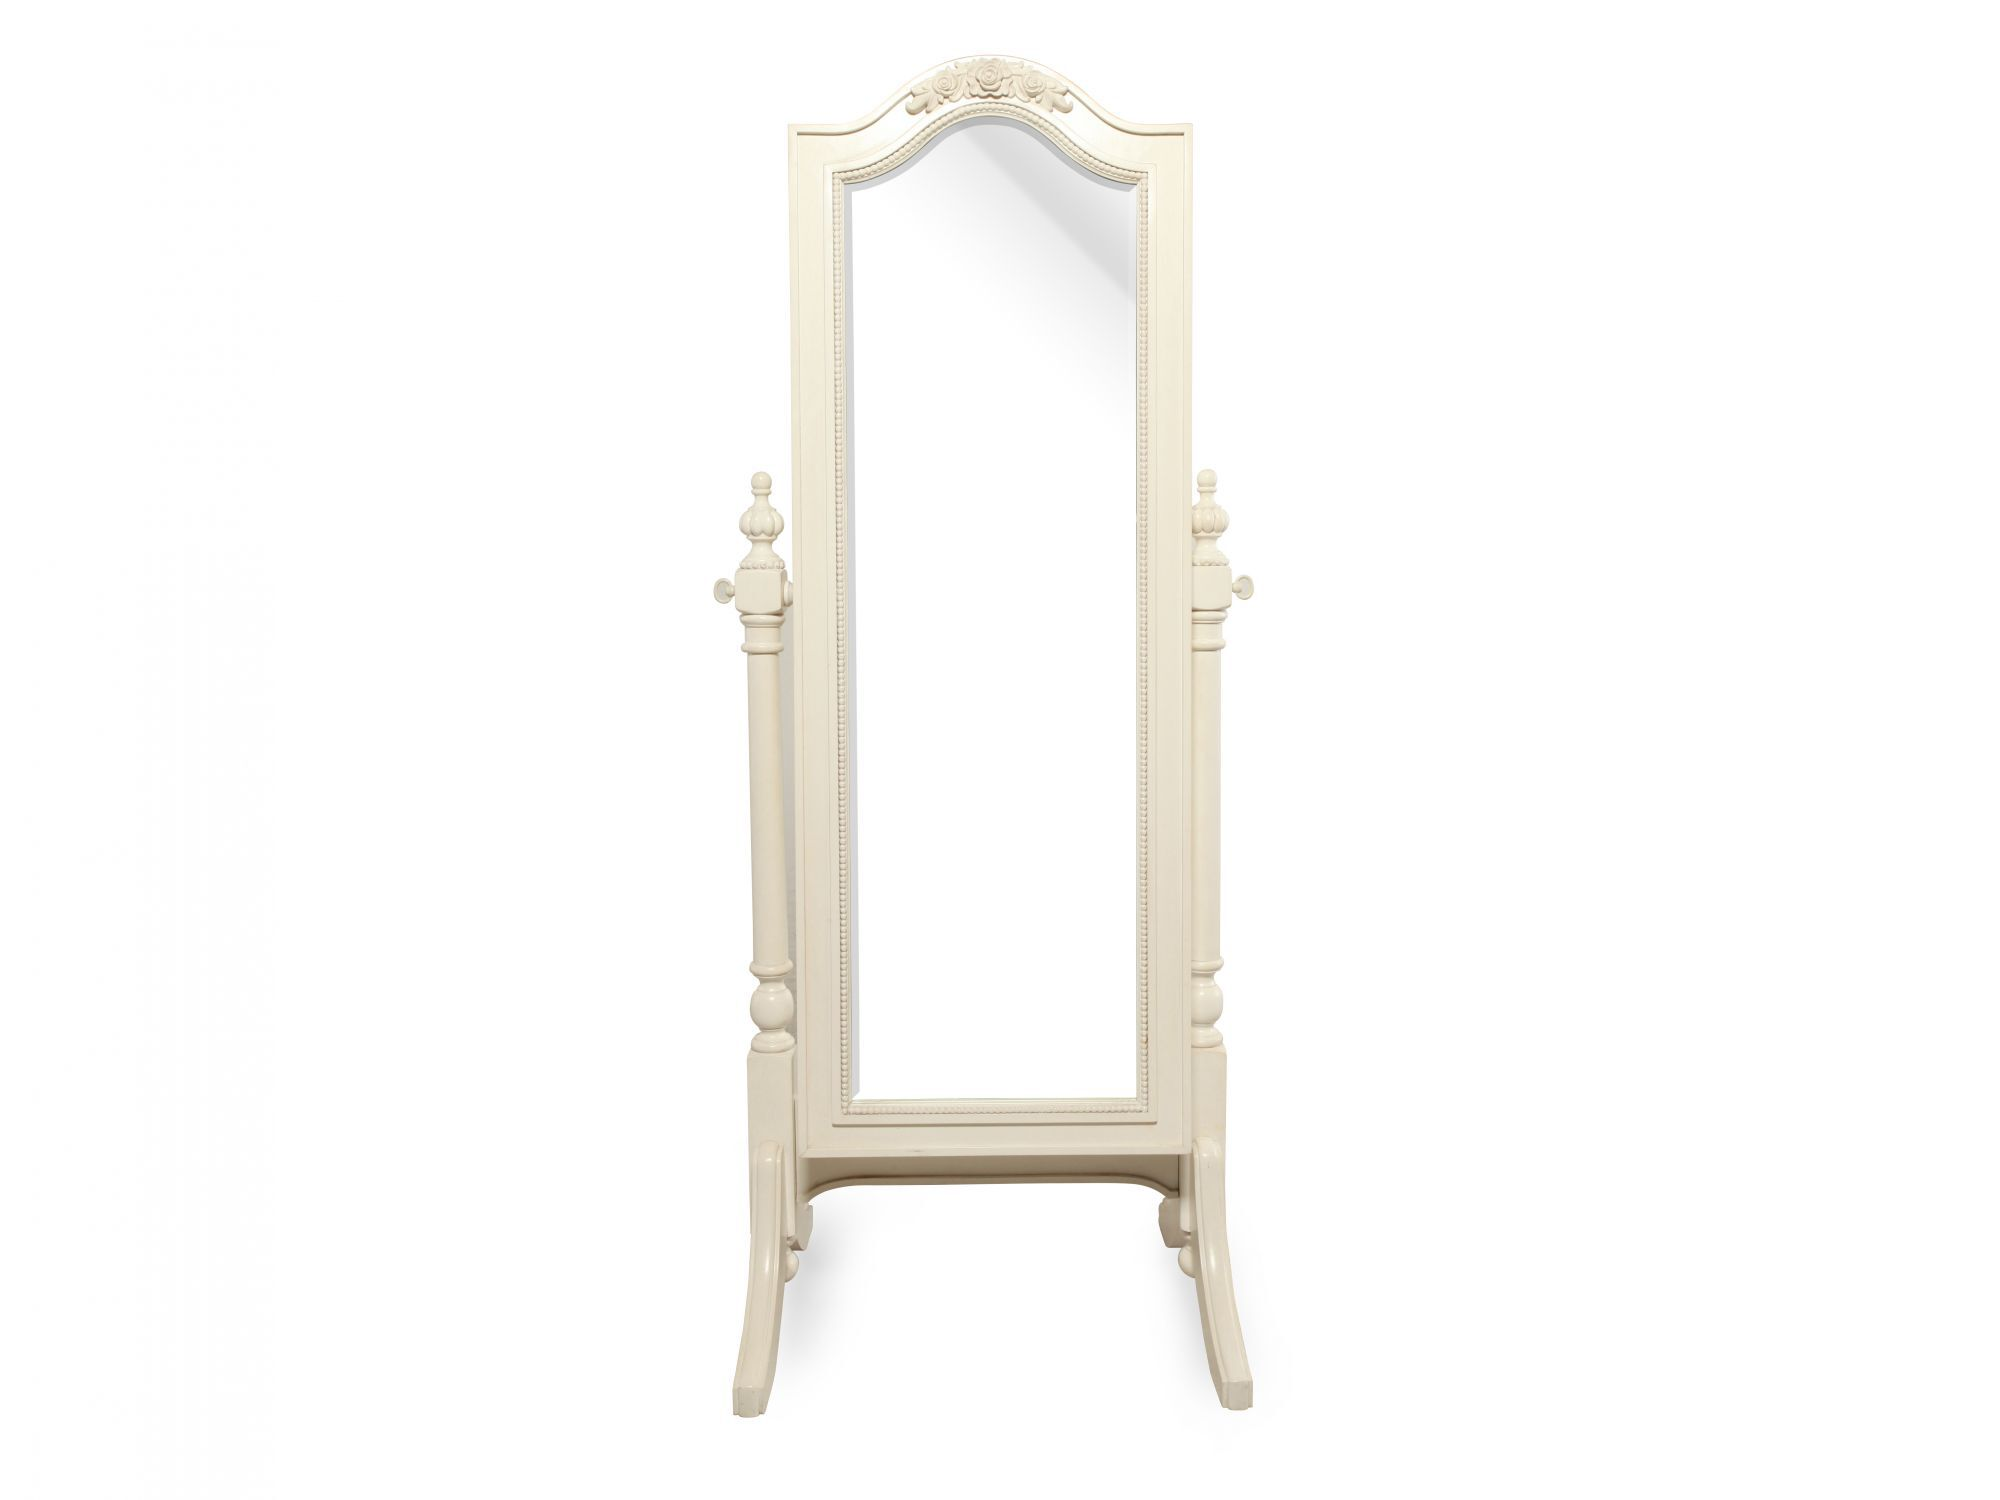 Bon Images Arched Traditional Youth Cheval Mirror With Concealed Storage In  Light White Arched Traditional Youth Cheval Mirror With Concealed Storage  In Light ...